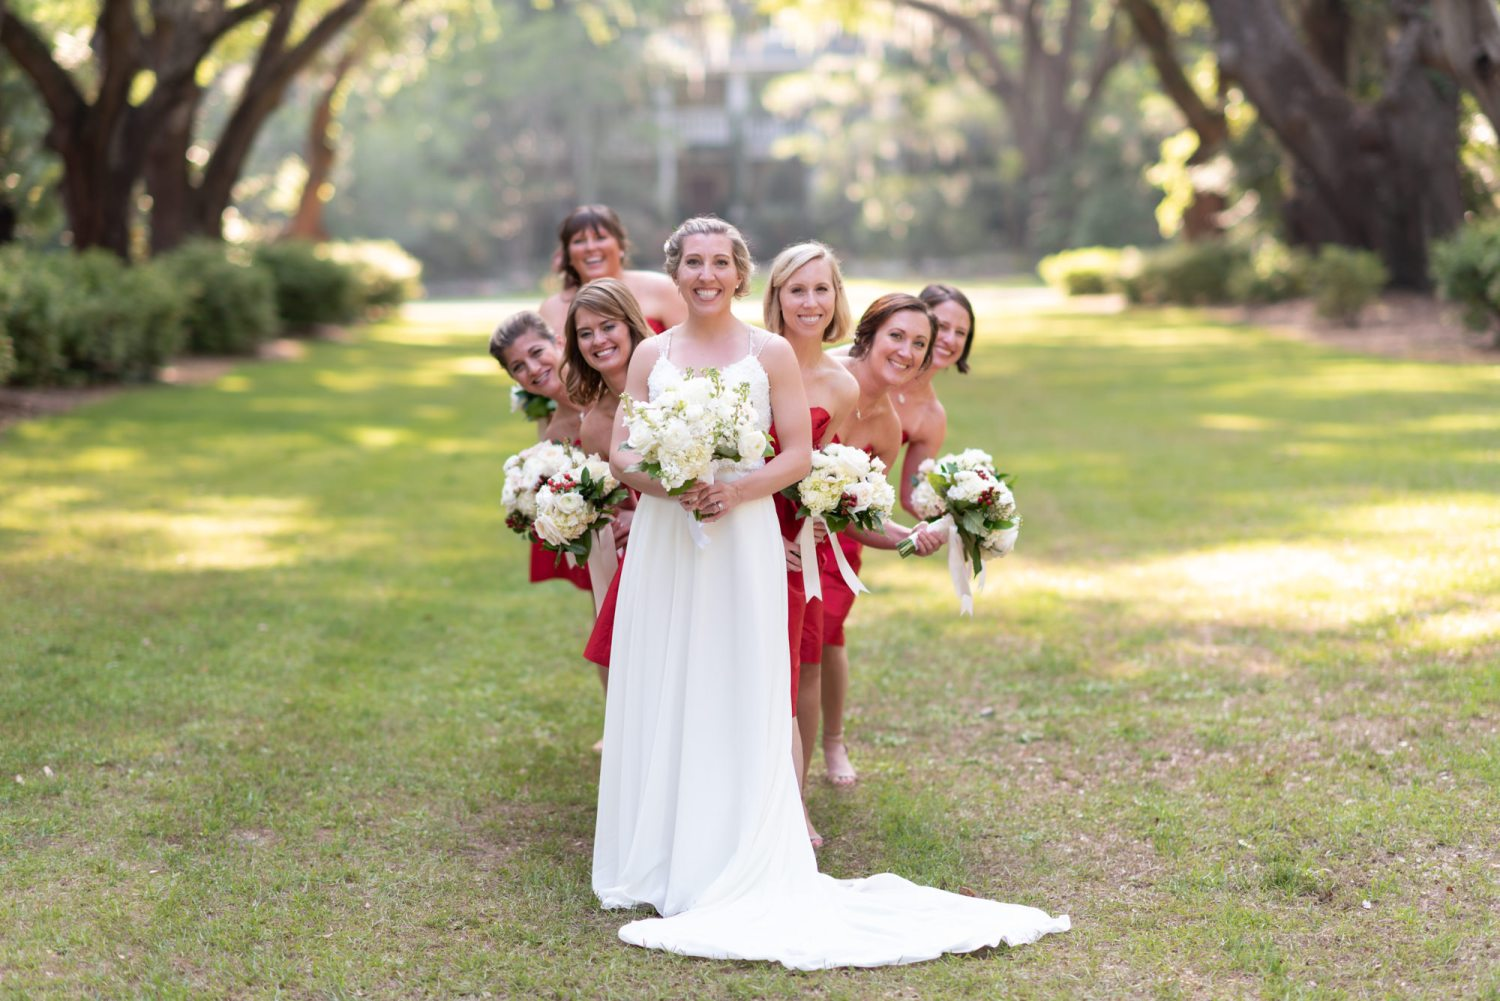 Bridesmaids peeking out from behind the bride - Wachesaw Plantation